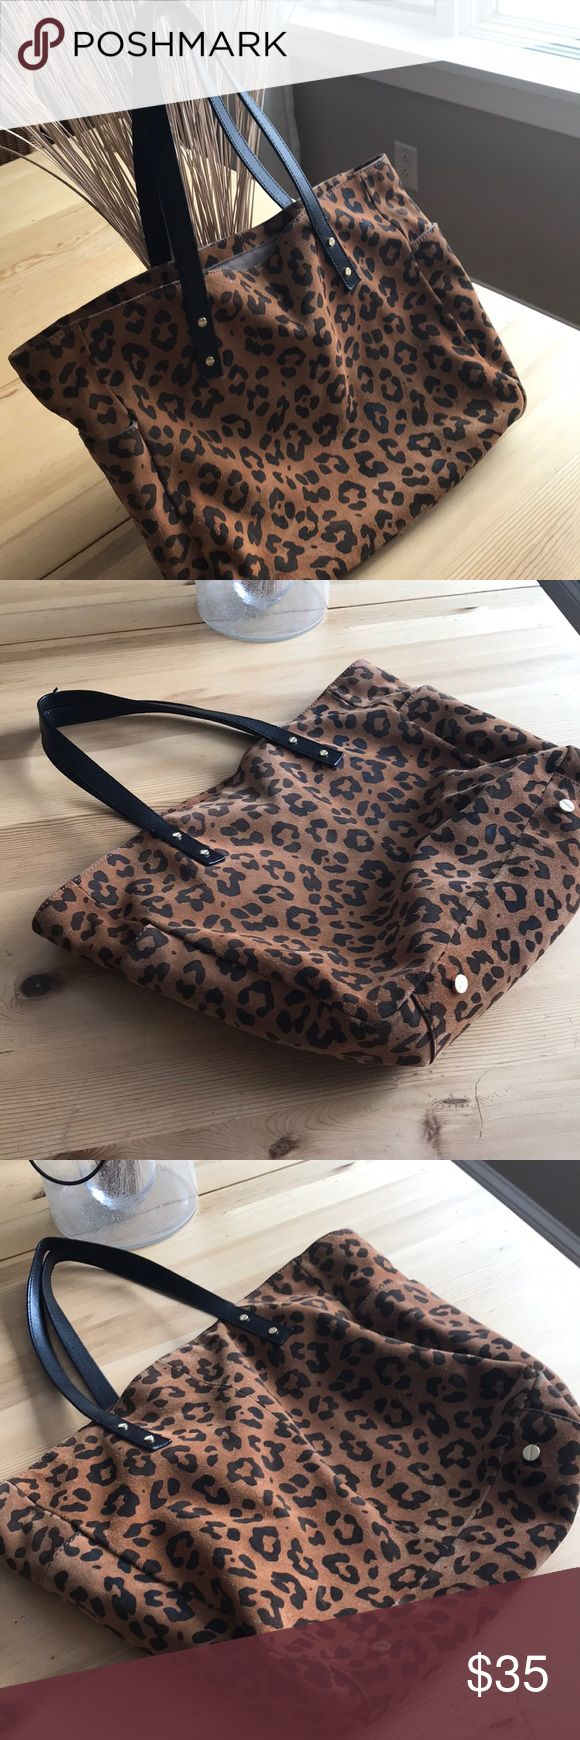 J Crew suede leopard tote bag J Crew suede leather leopard print tote bag! Lined, clean interior! Purchased new retail by me,  and lovingly cared for and enjoyed. No tears or issues on exterior. A few faded area on back of bag, done wear on handles as detailed in pictures. Such a great bag, loads of life left!! Offers and bundles welcome! Thanks for looking! J. Crew Bags Totes